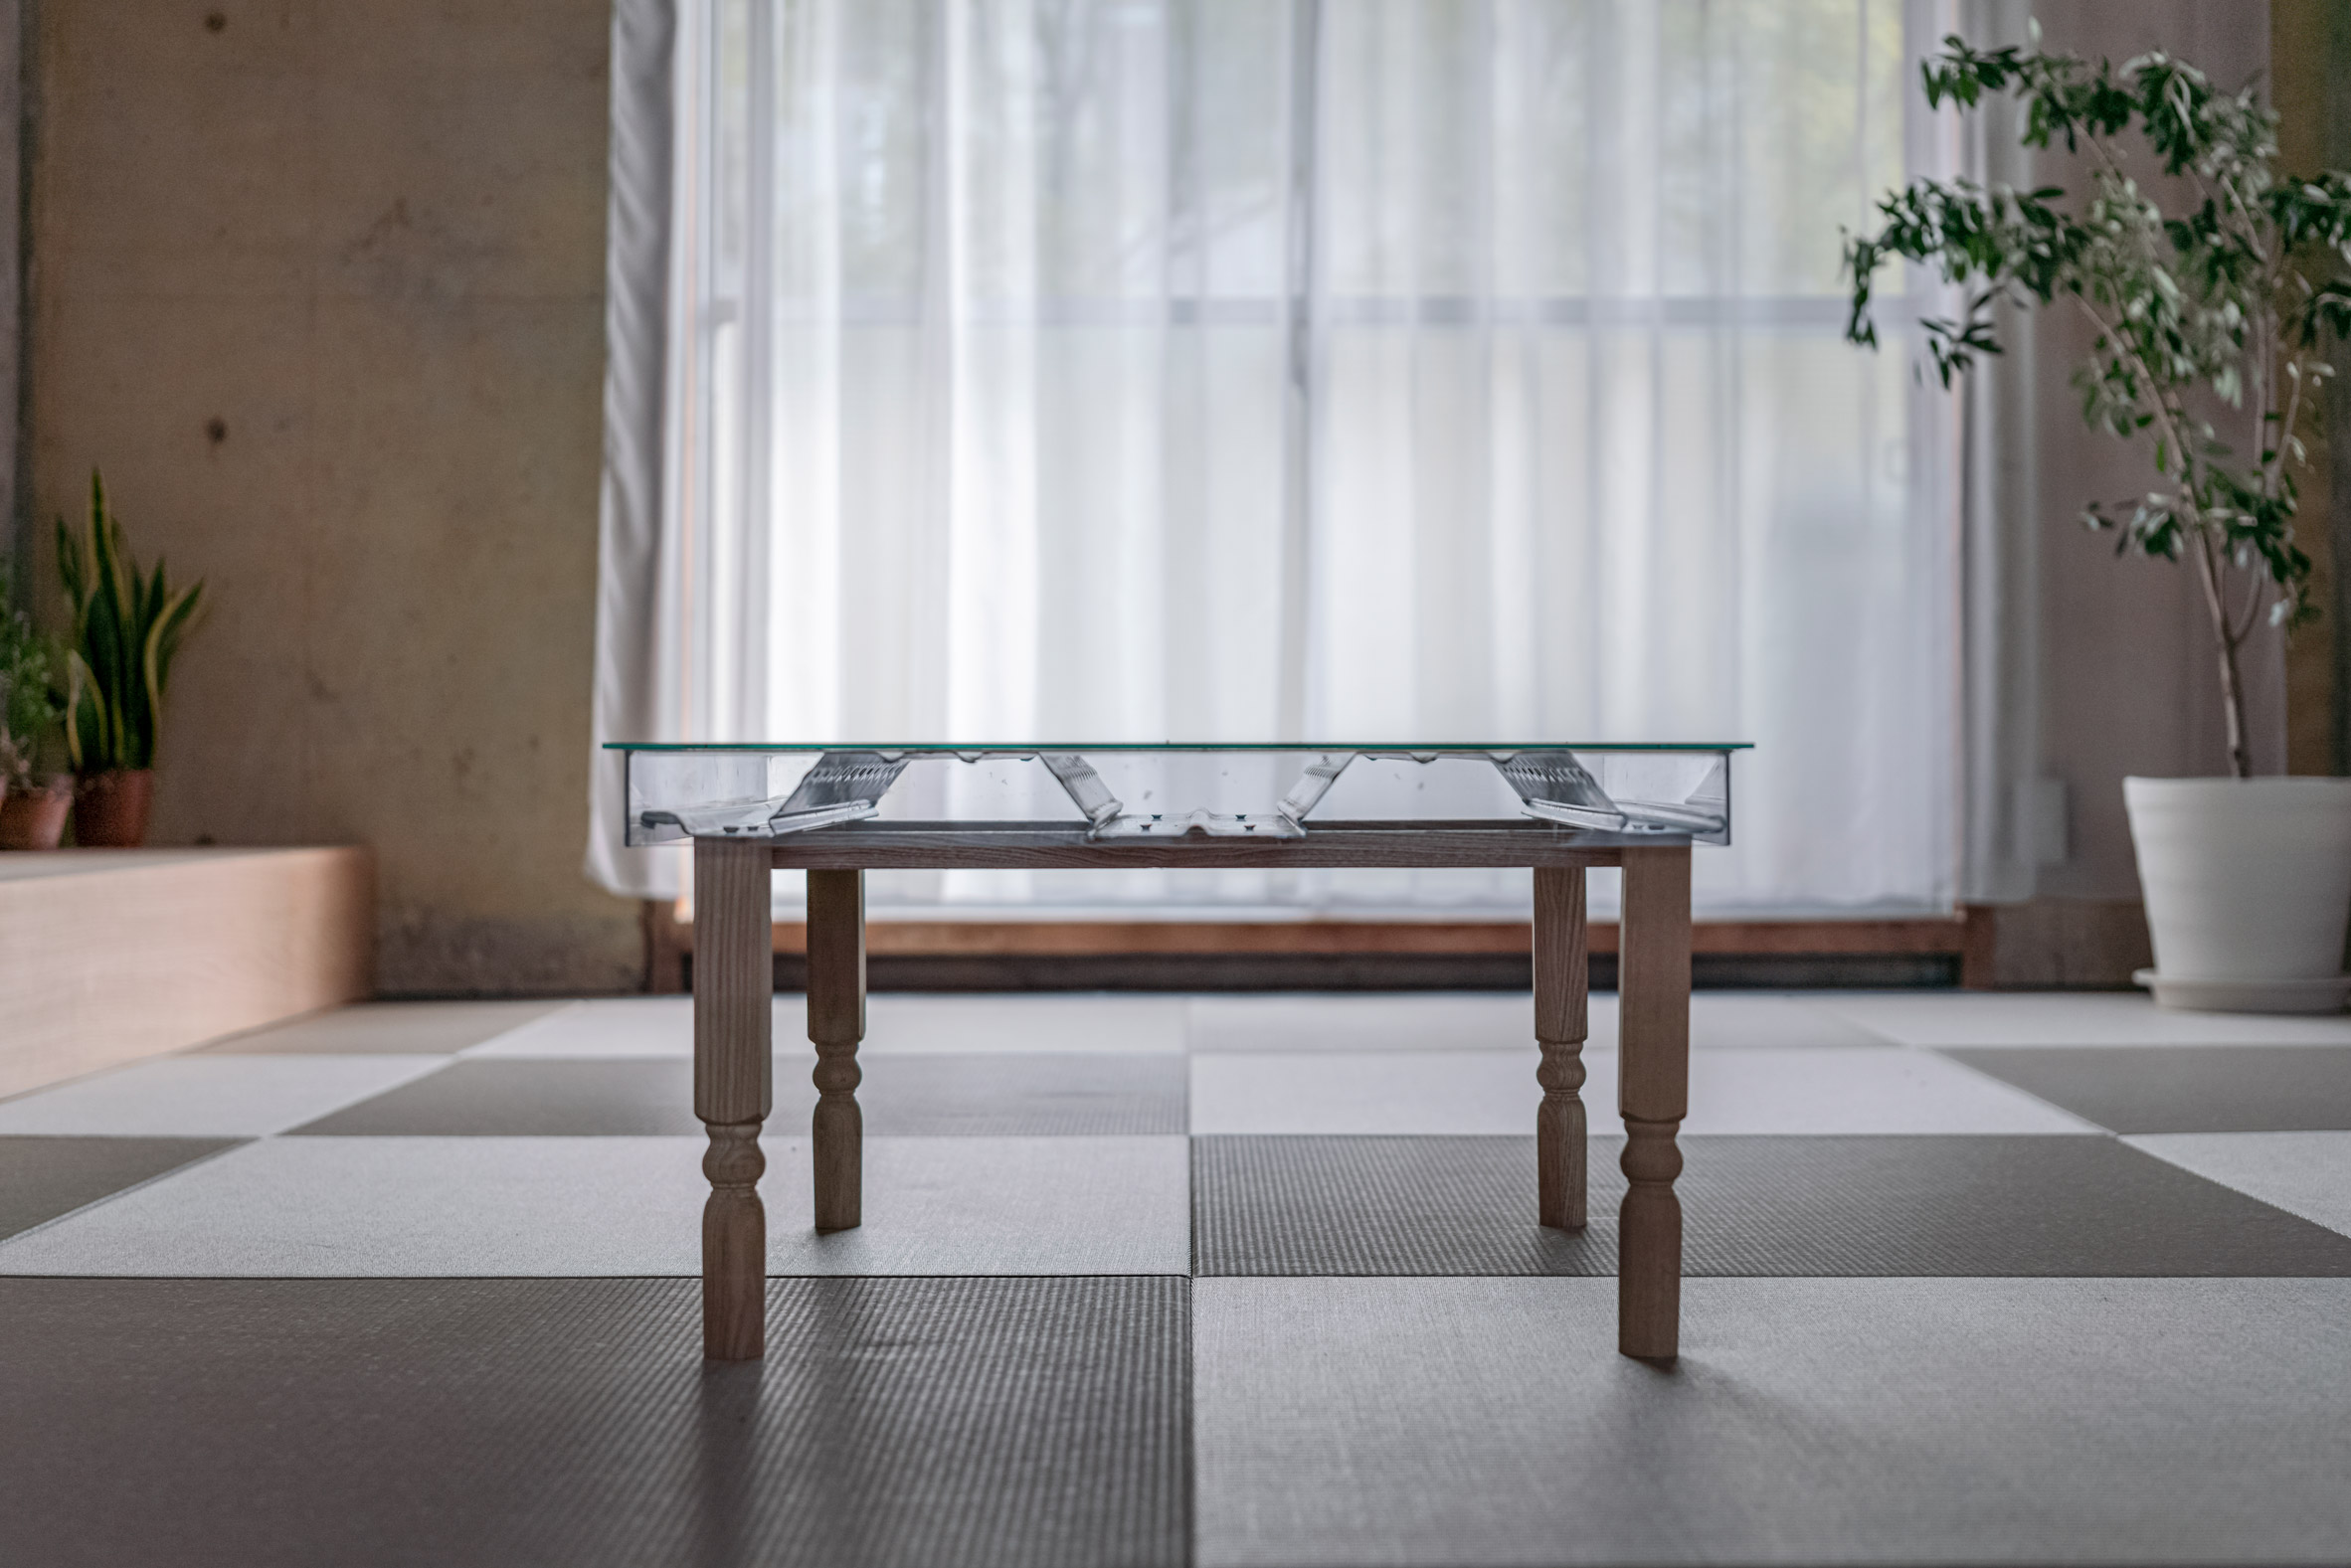 Table by Nanometer Architecture